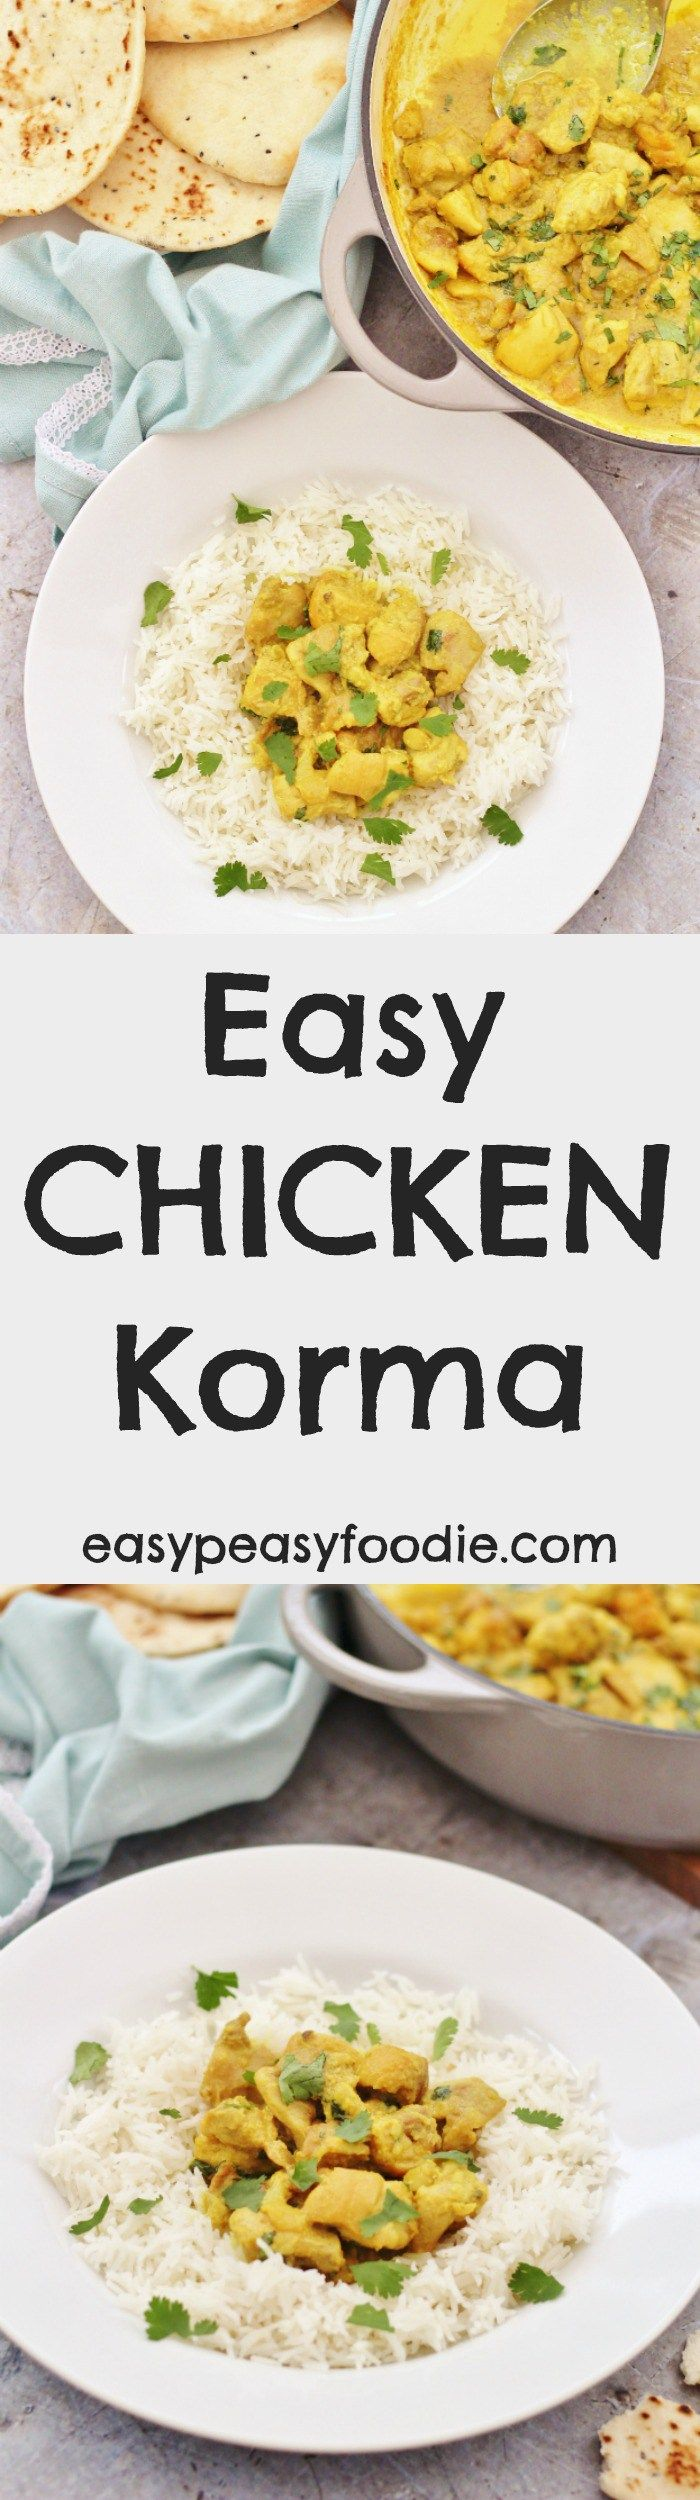 Mild and creamy with just a touch of spice, this Easy Chicken Korma is perfect for kids and those who don't like their curries too hot. This simple curry recipe is very easy to make and takes just 25 minutes - ideal for busy weeknights! #easy #chicken #korma #dairyfree #glutenfree #mild #easydinners #under30minutes